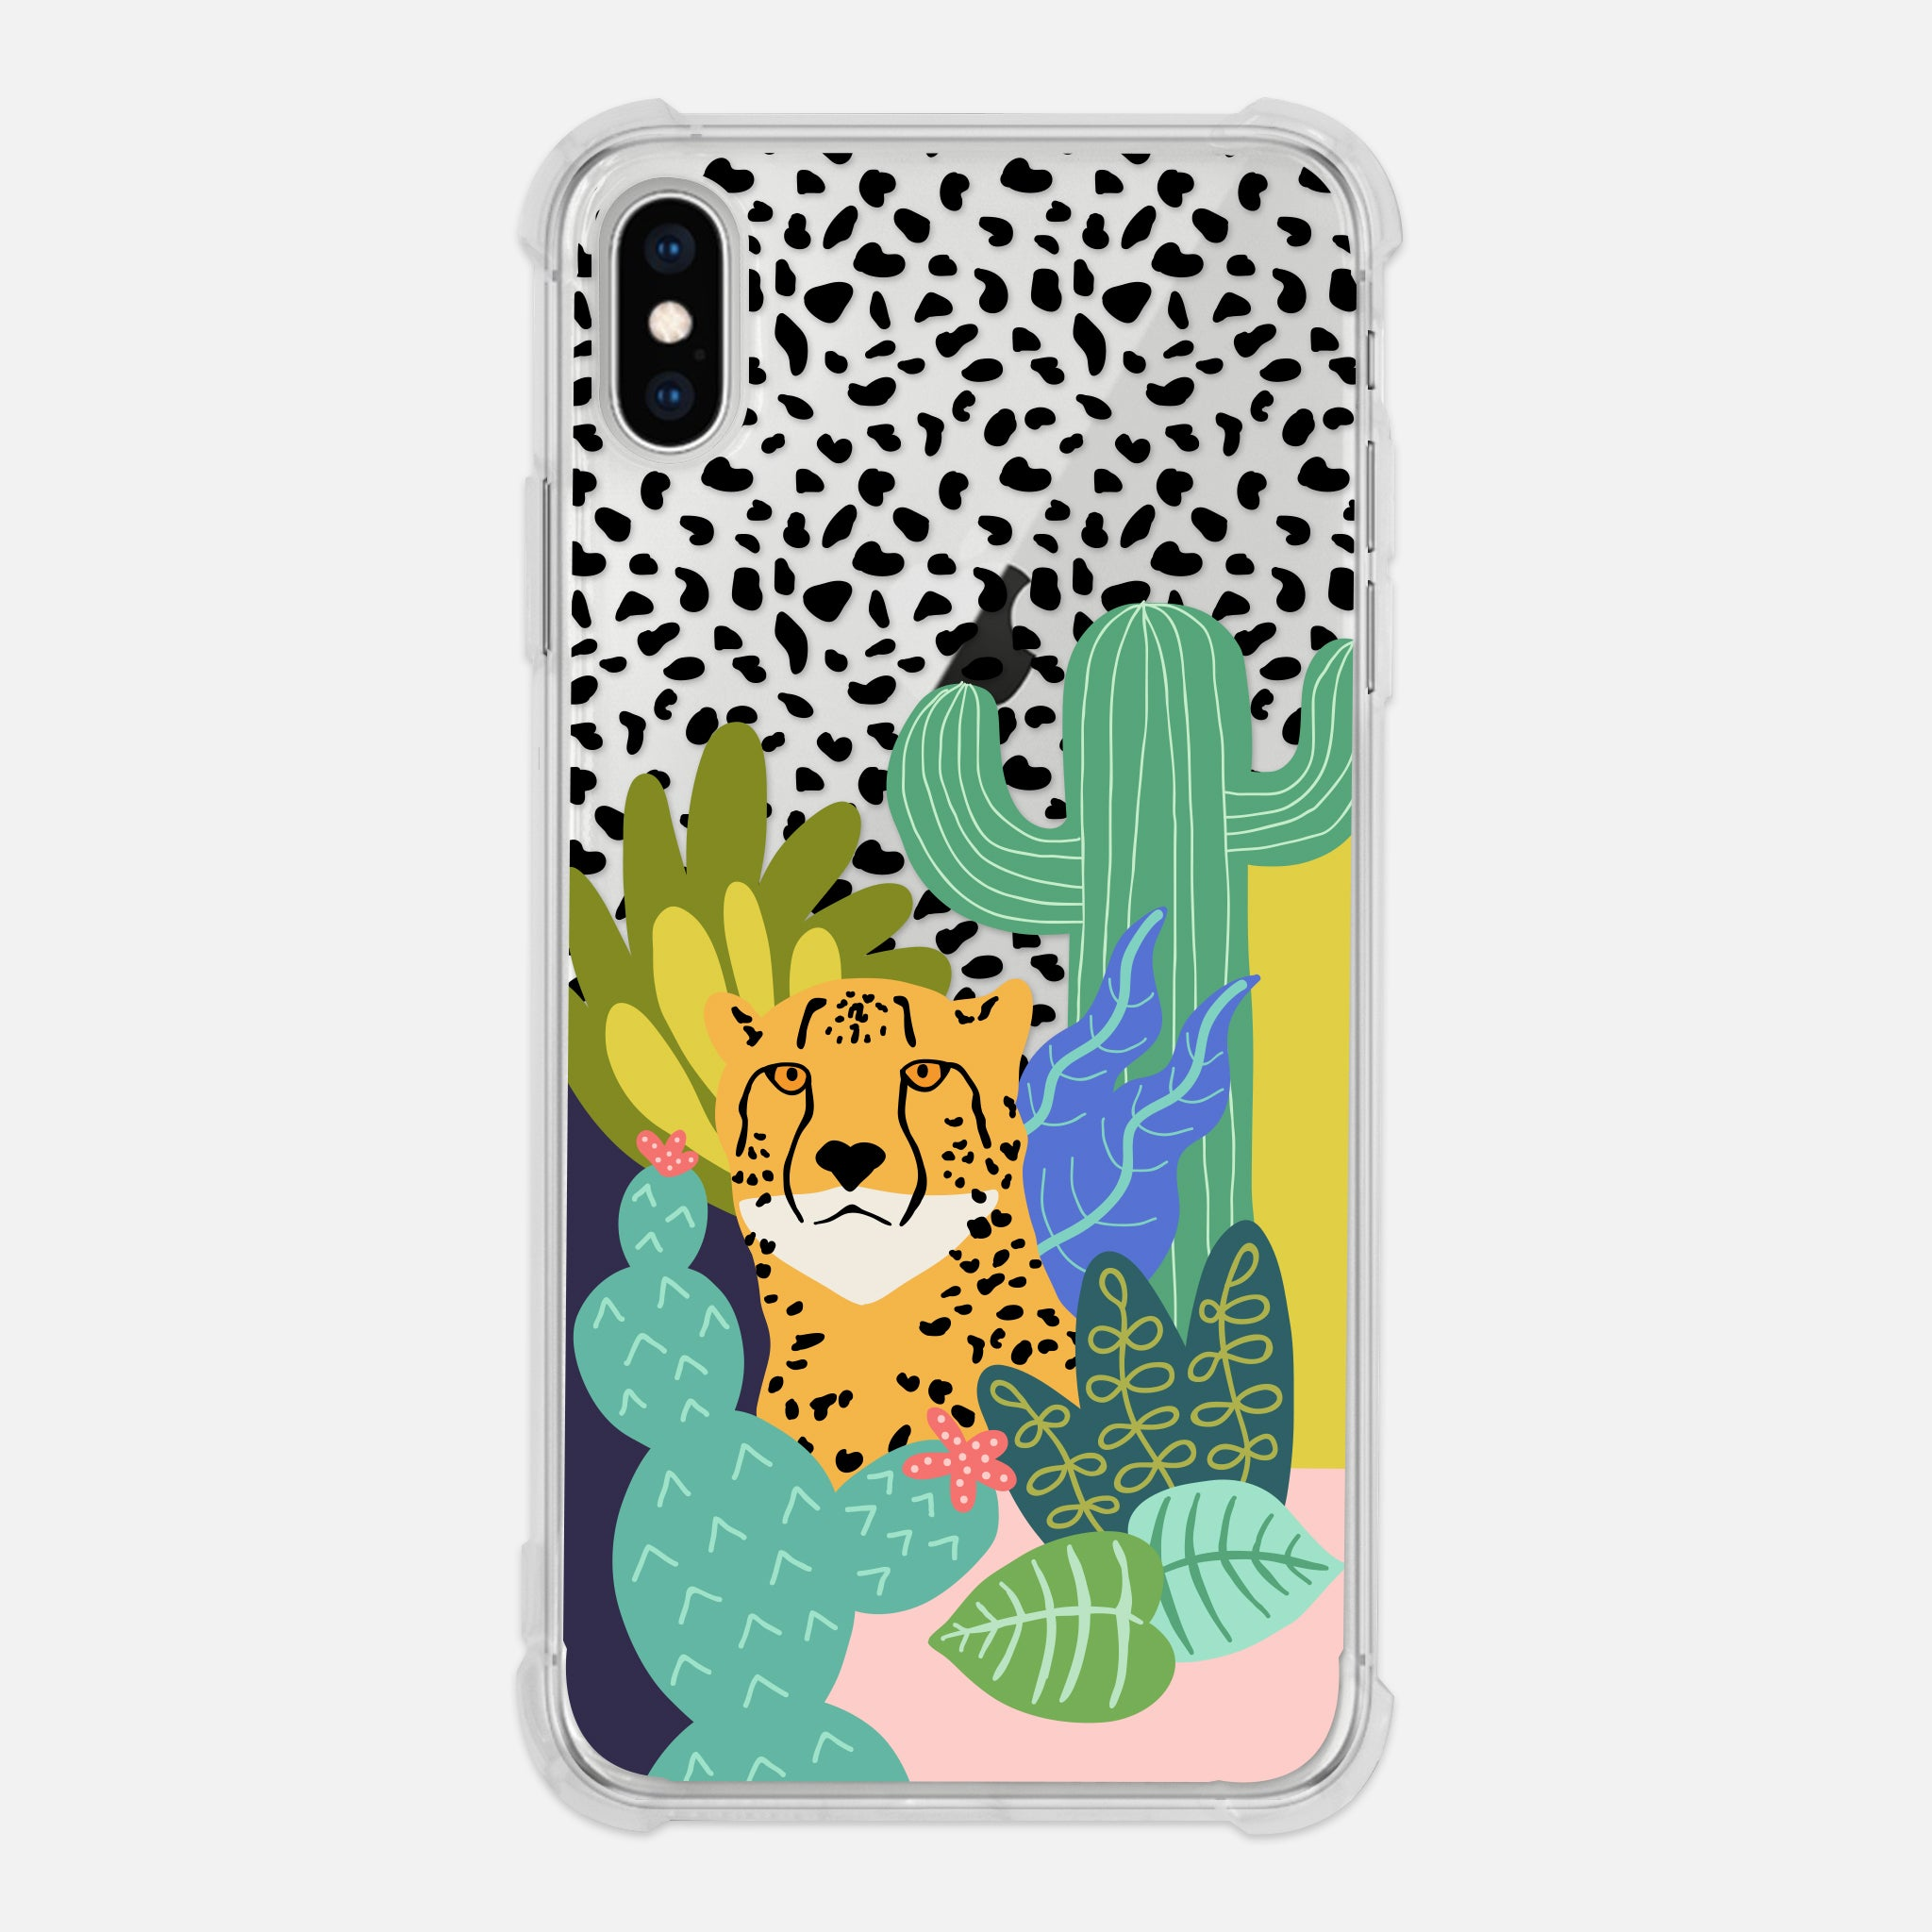 Cheetah Print Safari Animal Cactus Leaves Colorful Trendy Clear iPhone Case for iPhone 11 Pro Max XR XS X 8 7 6 6s Plus - By Happy Cat Prints